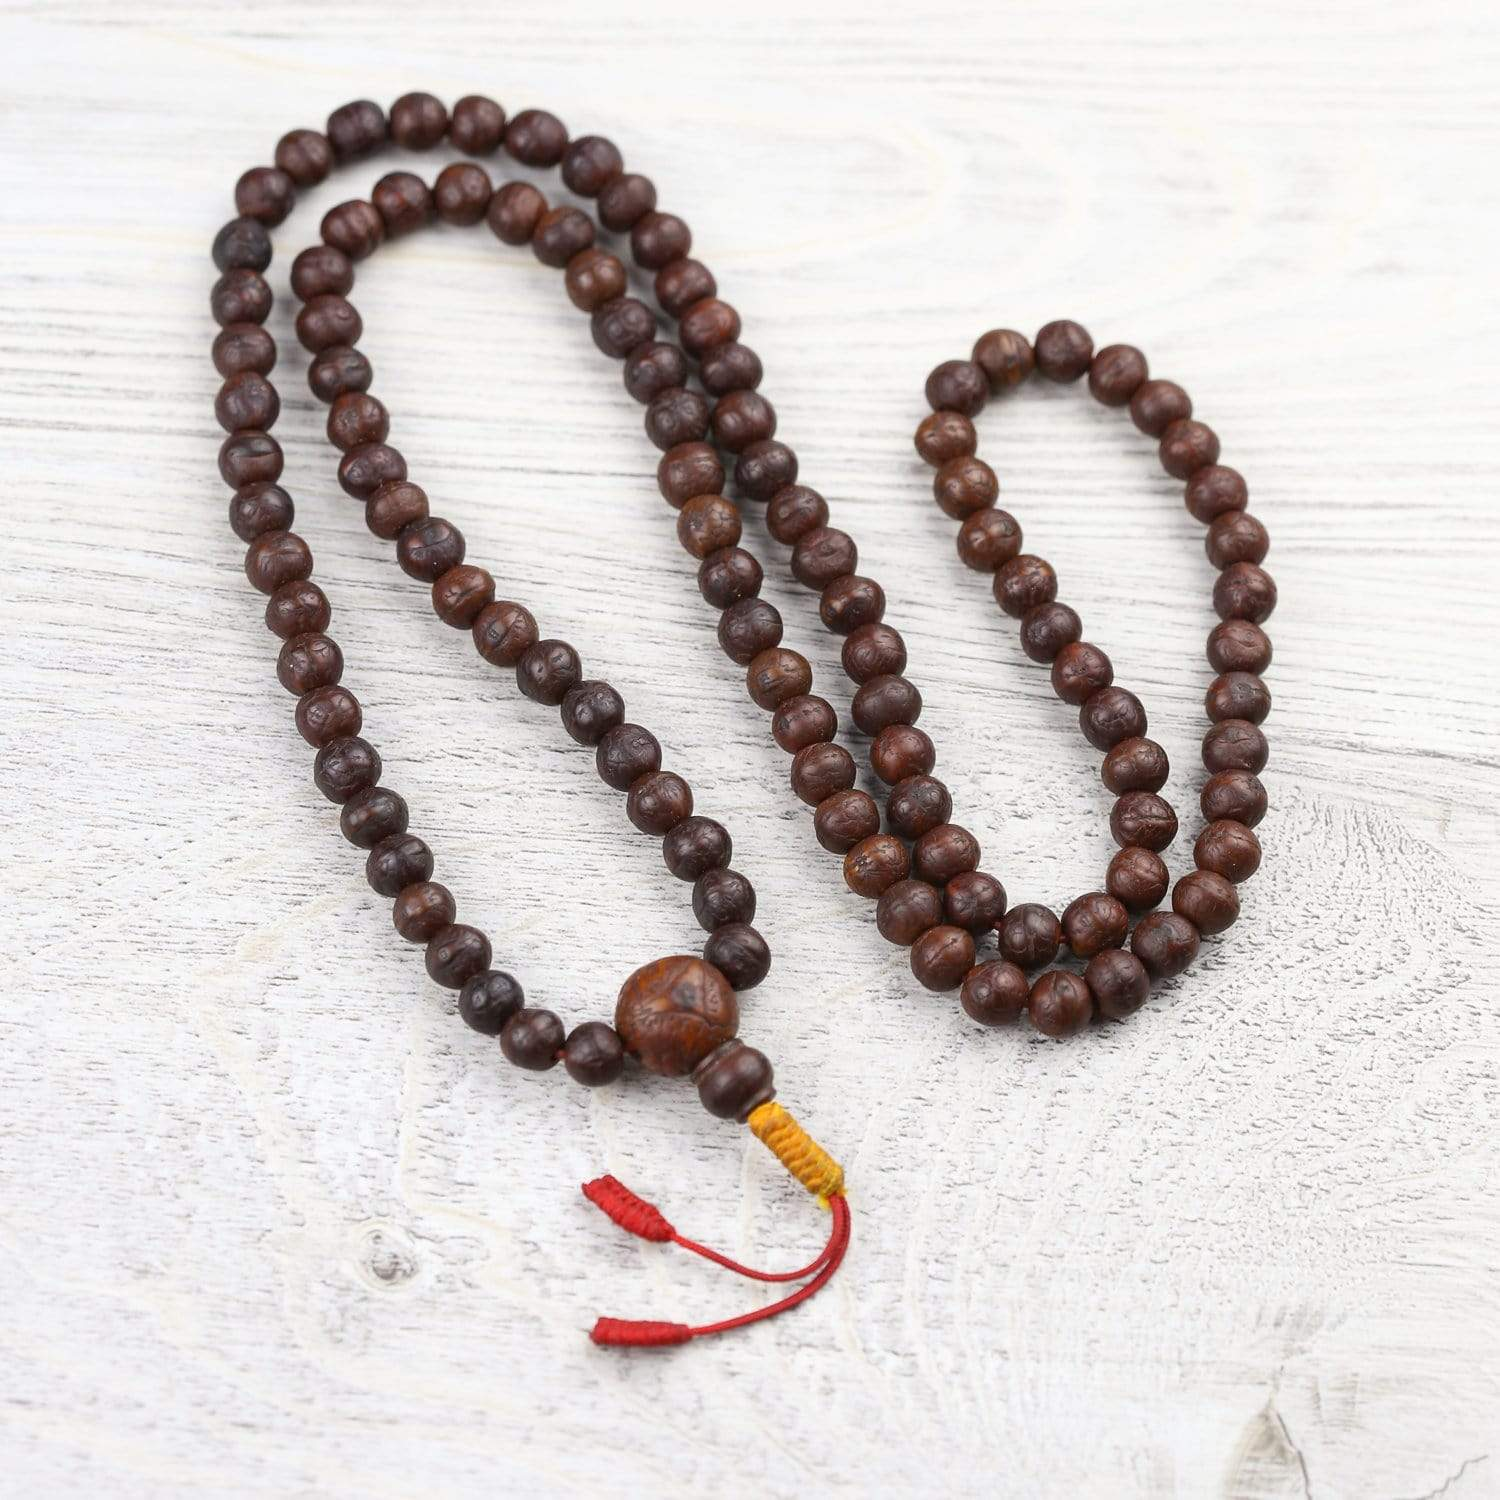 Mala Beads Dharma Teachings Antique Bodhi Mala